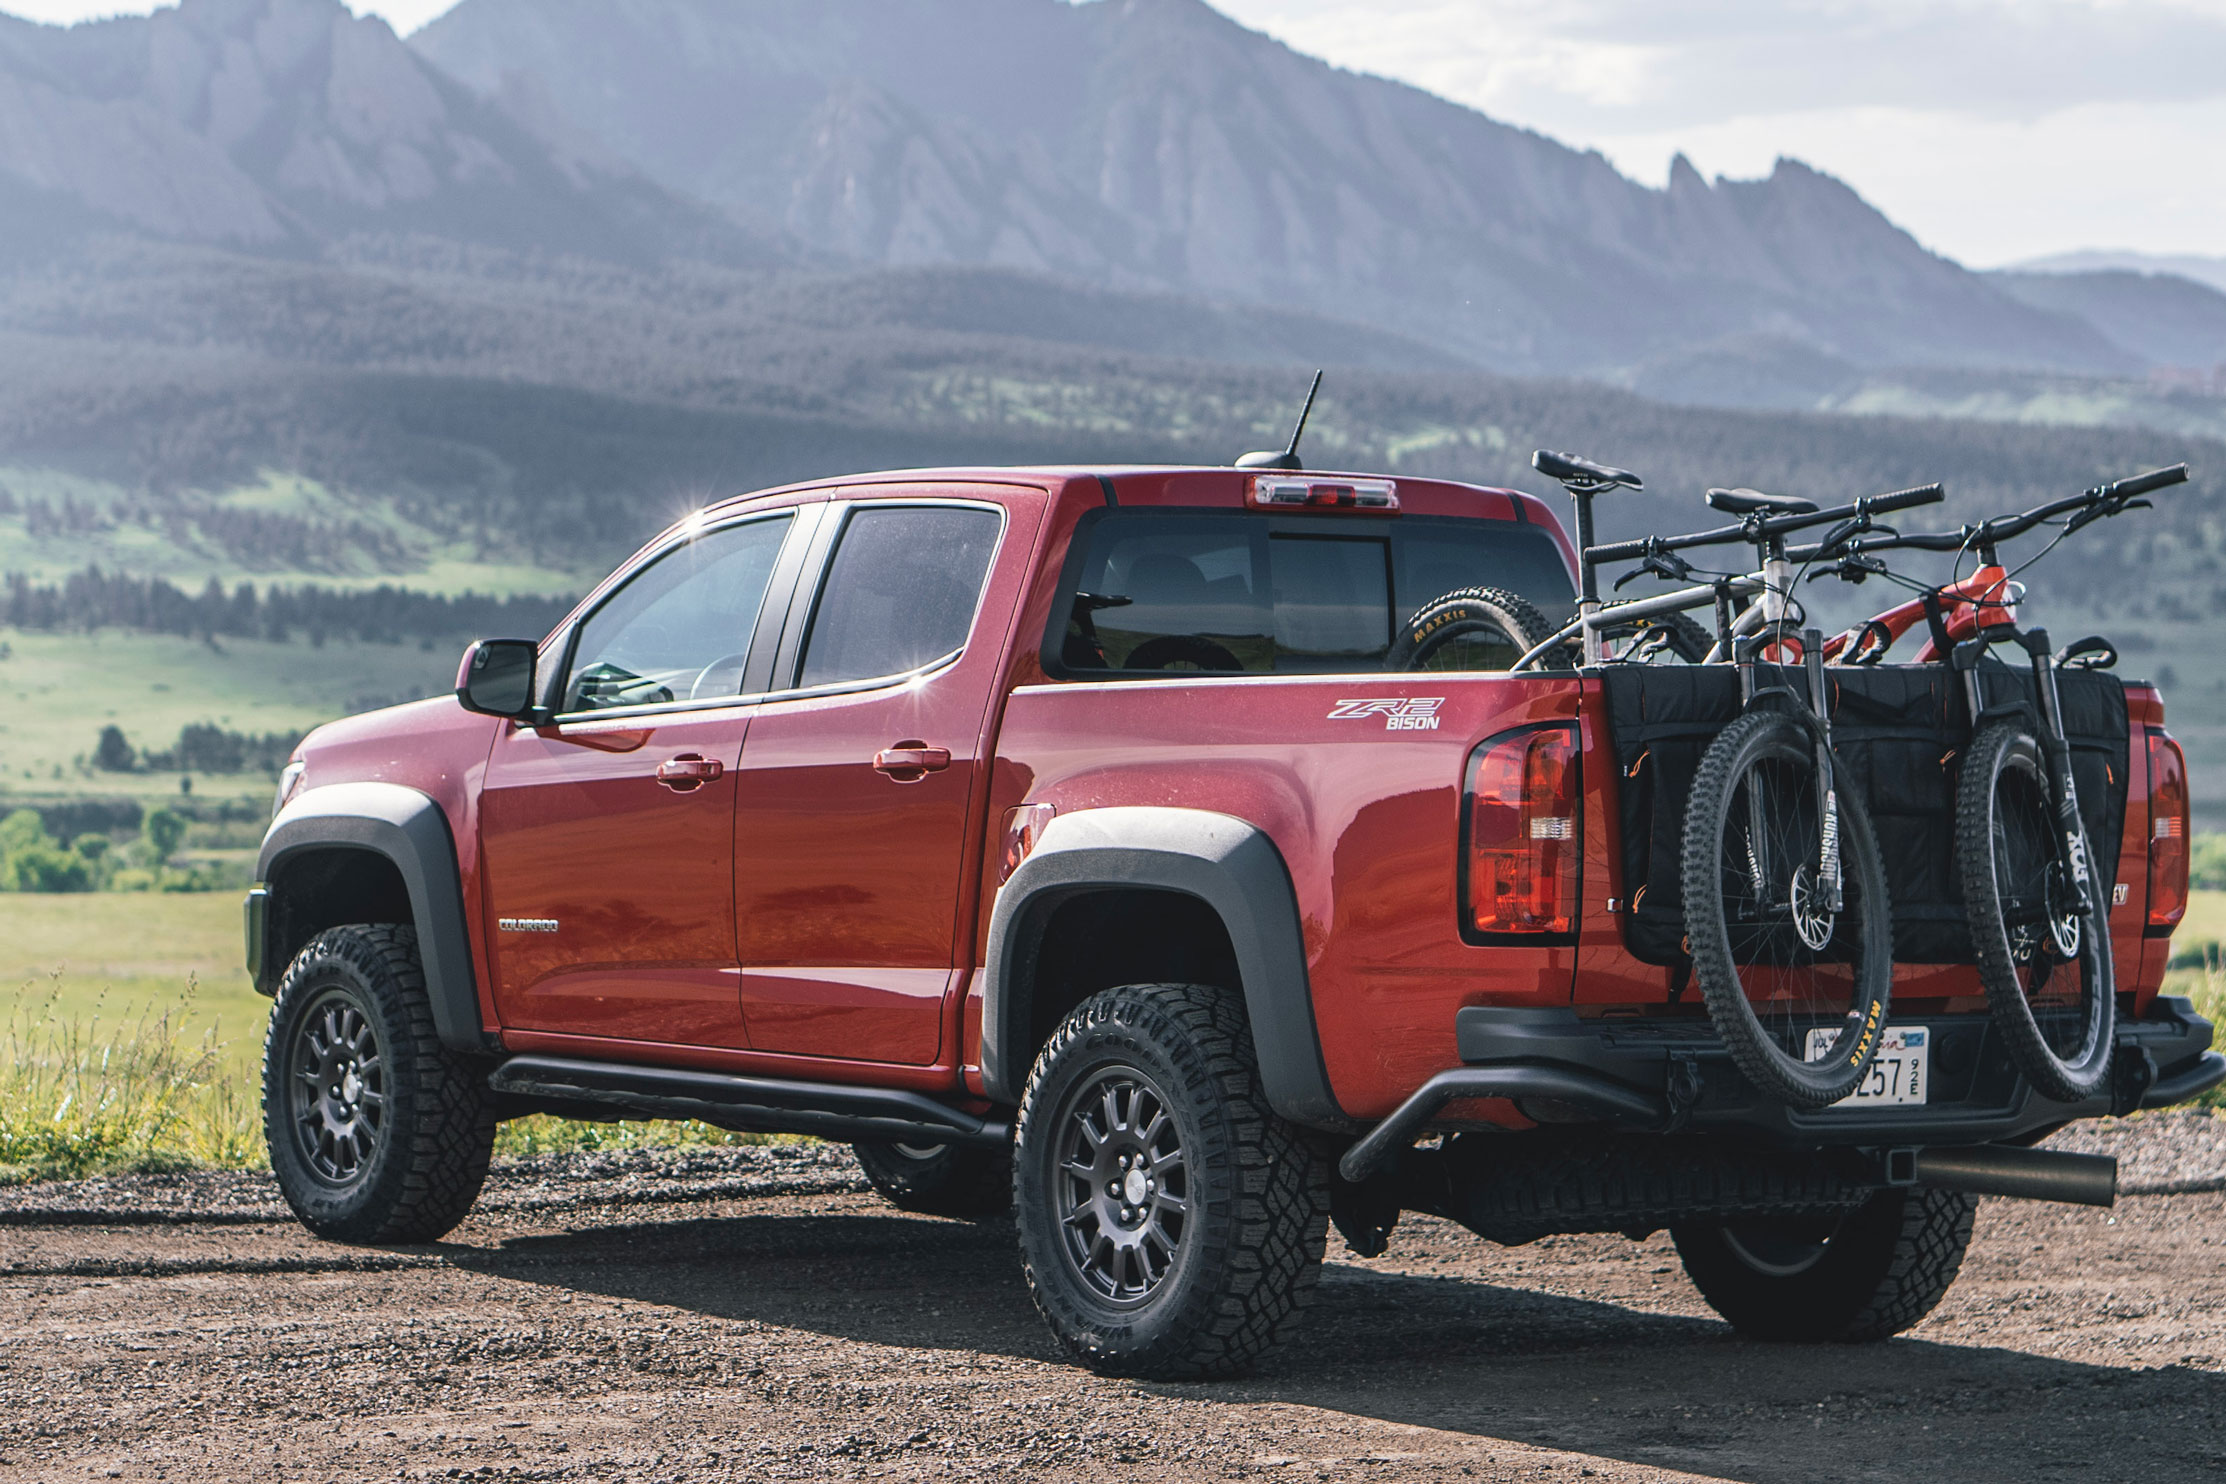 RMU Tailgate Locker Review: MTB & Gear Hauler on the Go | GearJunkie